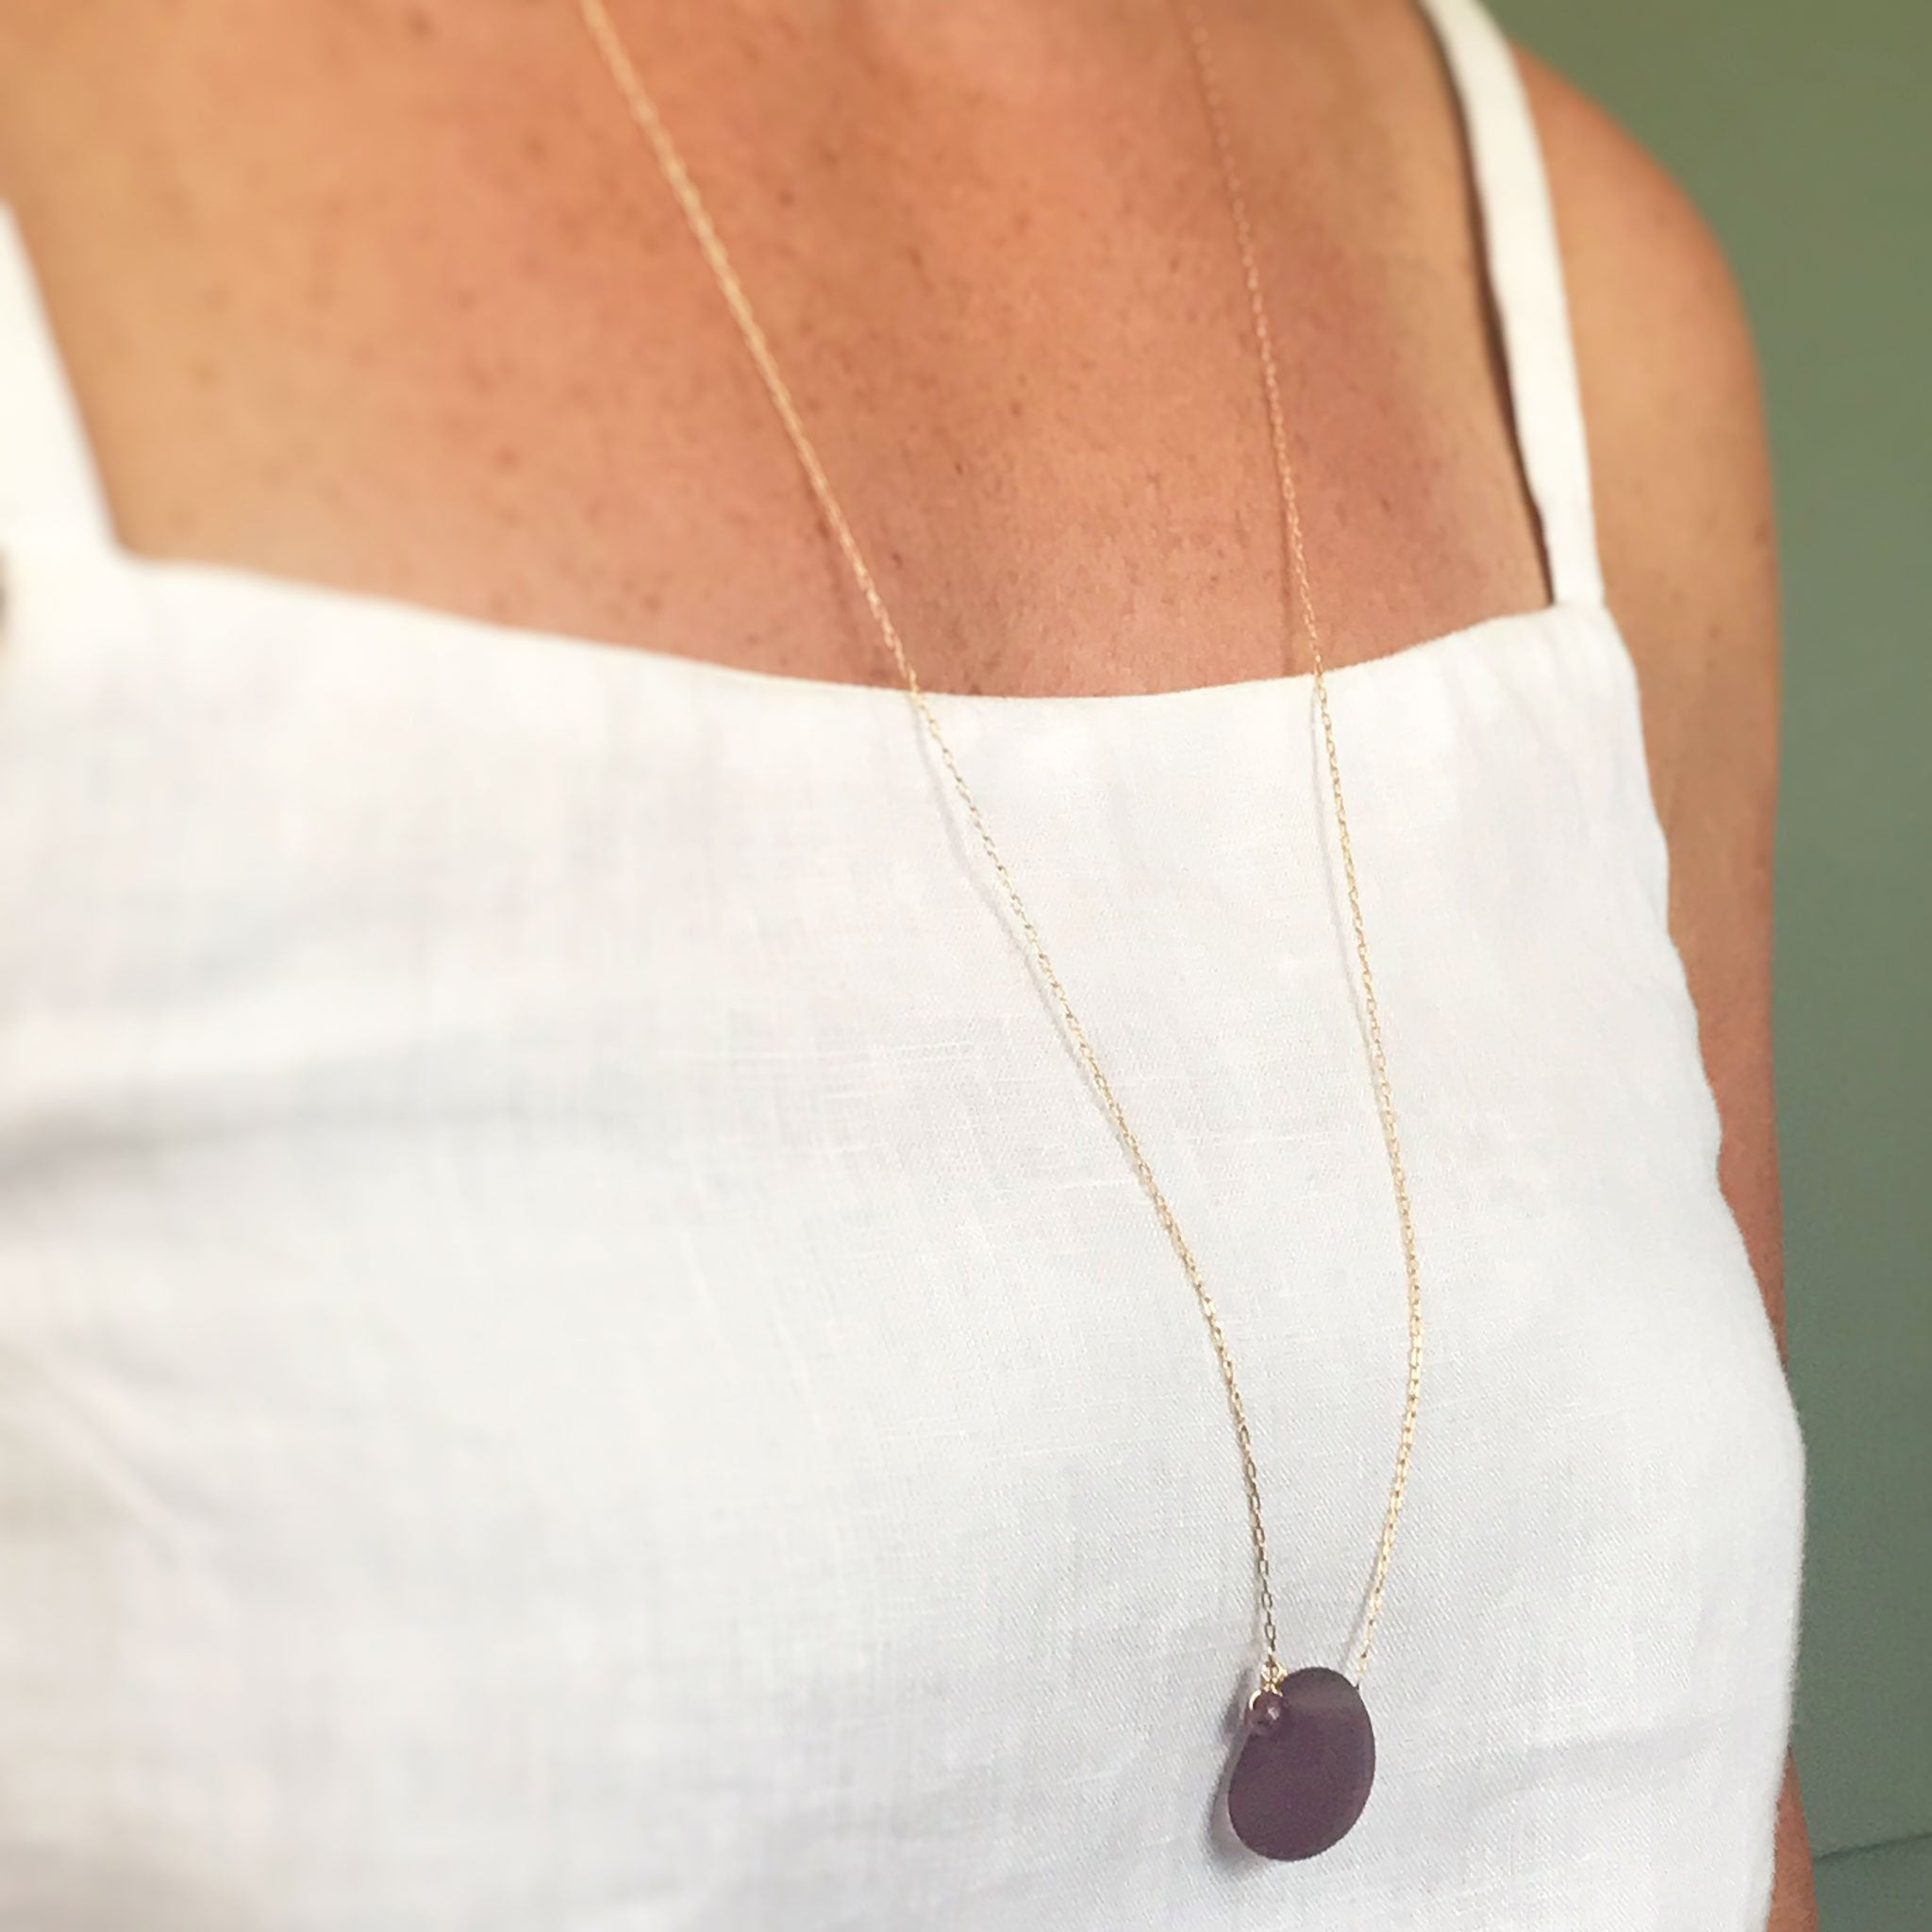 wine coloured seaglass necklace on gold chain kriket Broadhurst jewellery